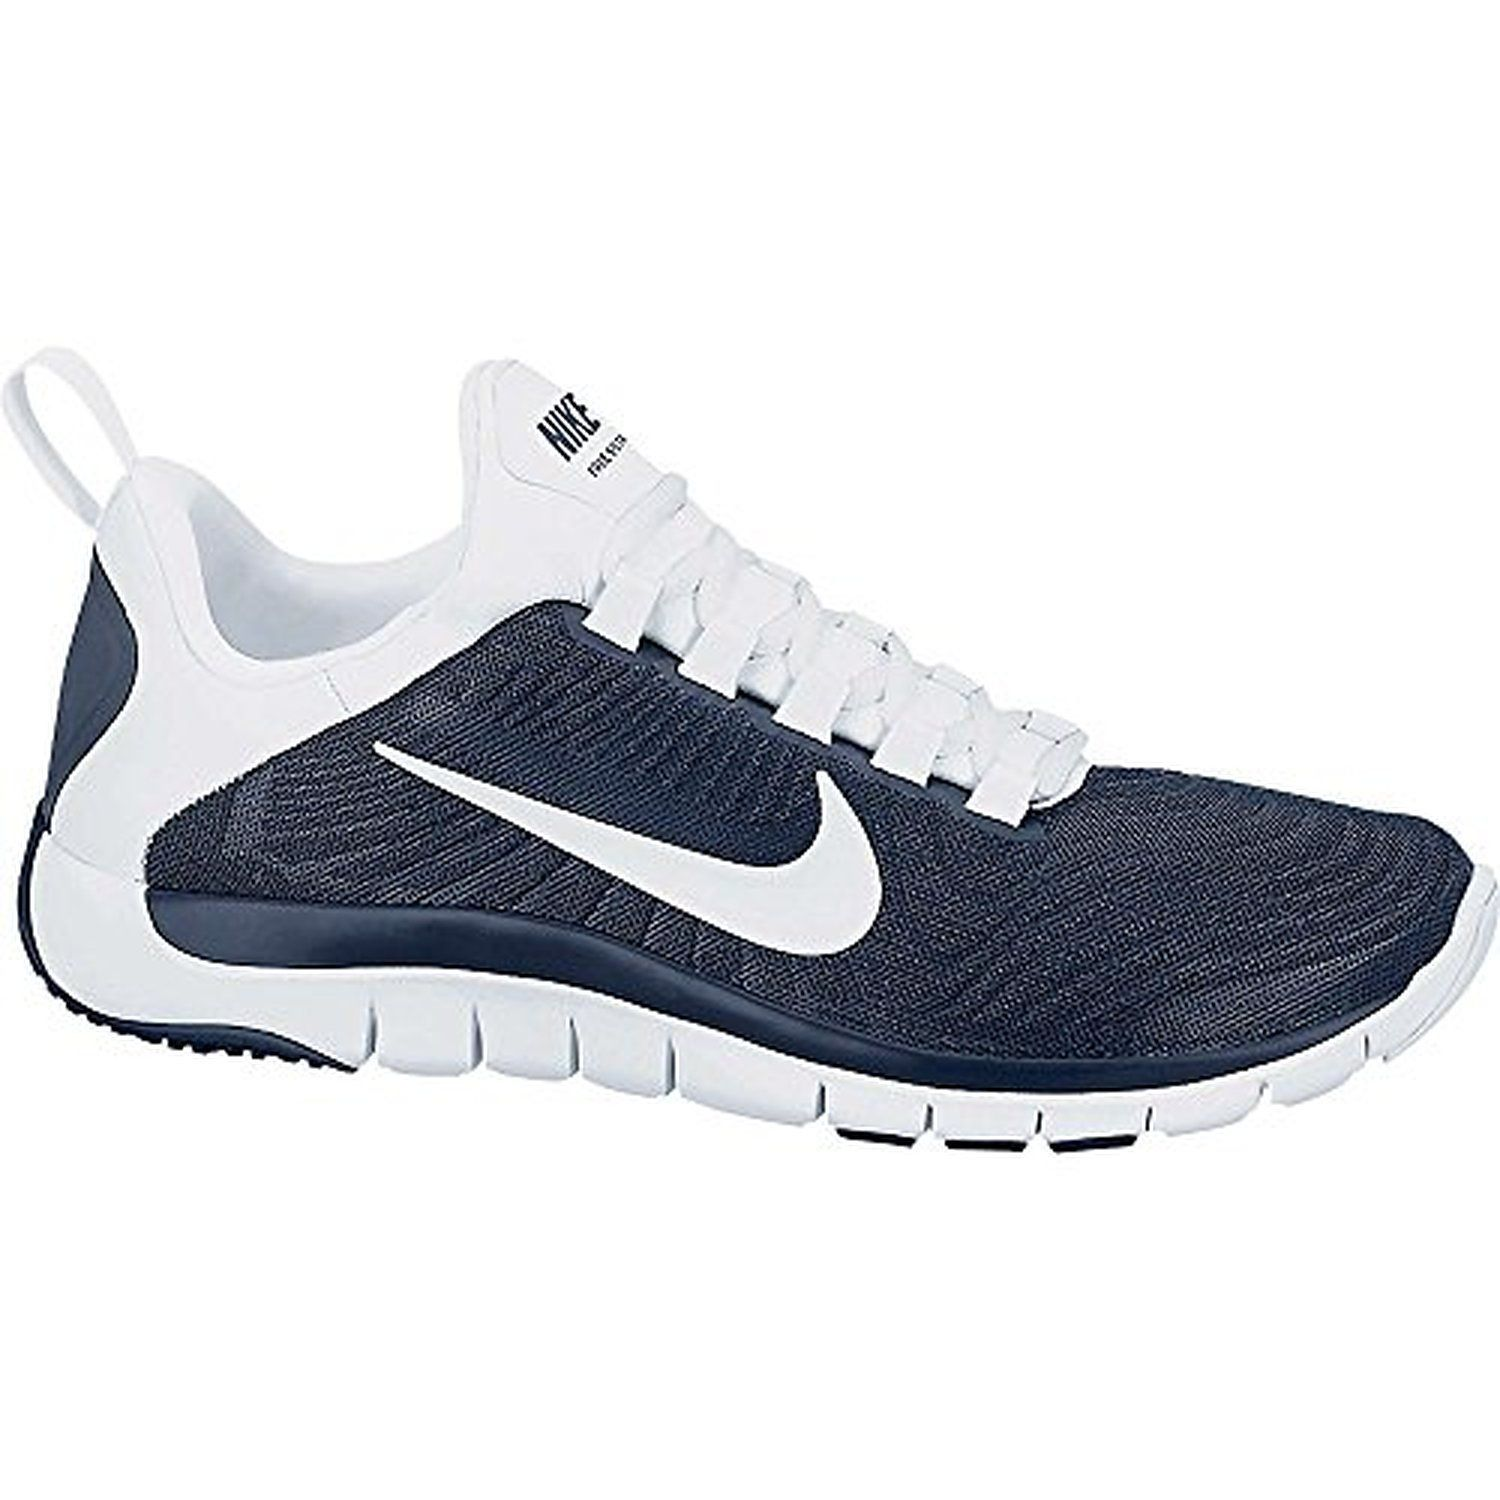 huge discount 19a25 56e20 cool Top 10 Best Nike Free Trainer 5.0 Models -- Reviewing Your Choices    Sports and Fitness   Pinterest   Nike free trainer and Trainers